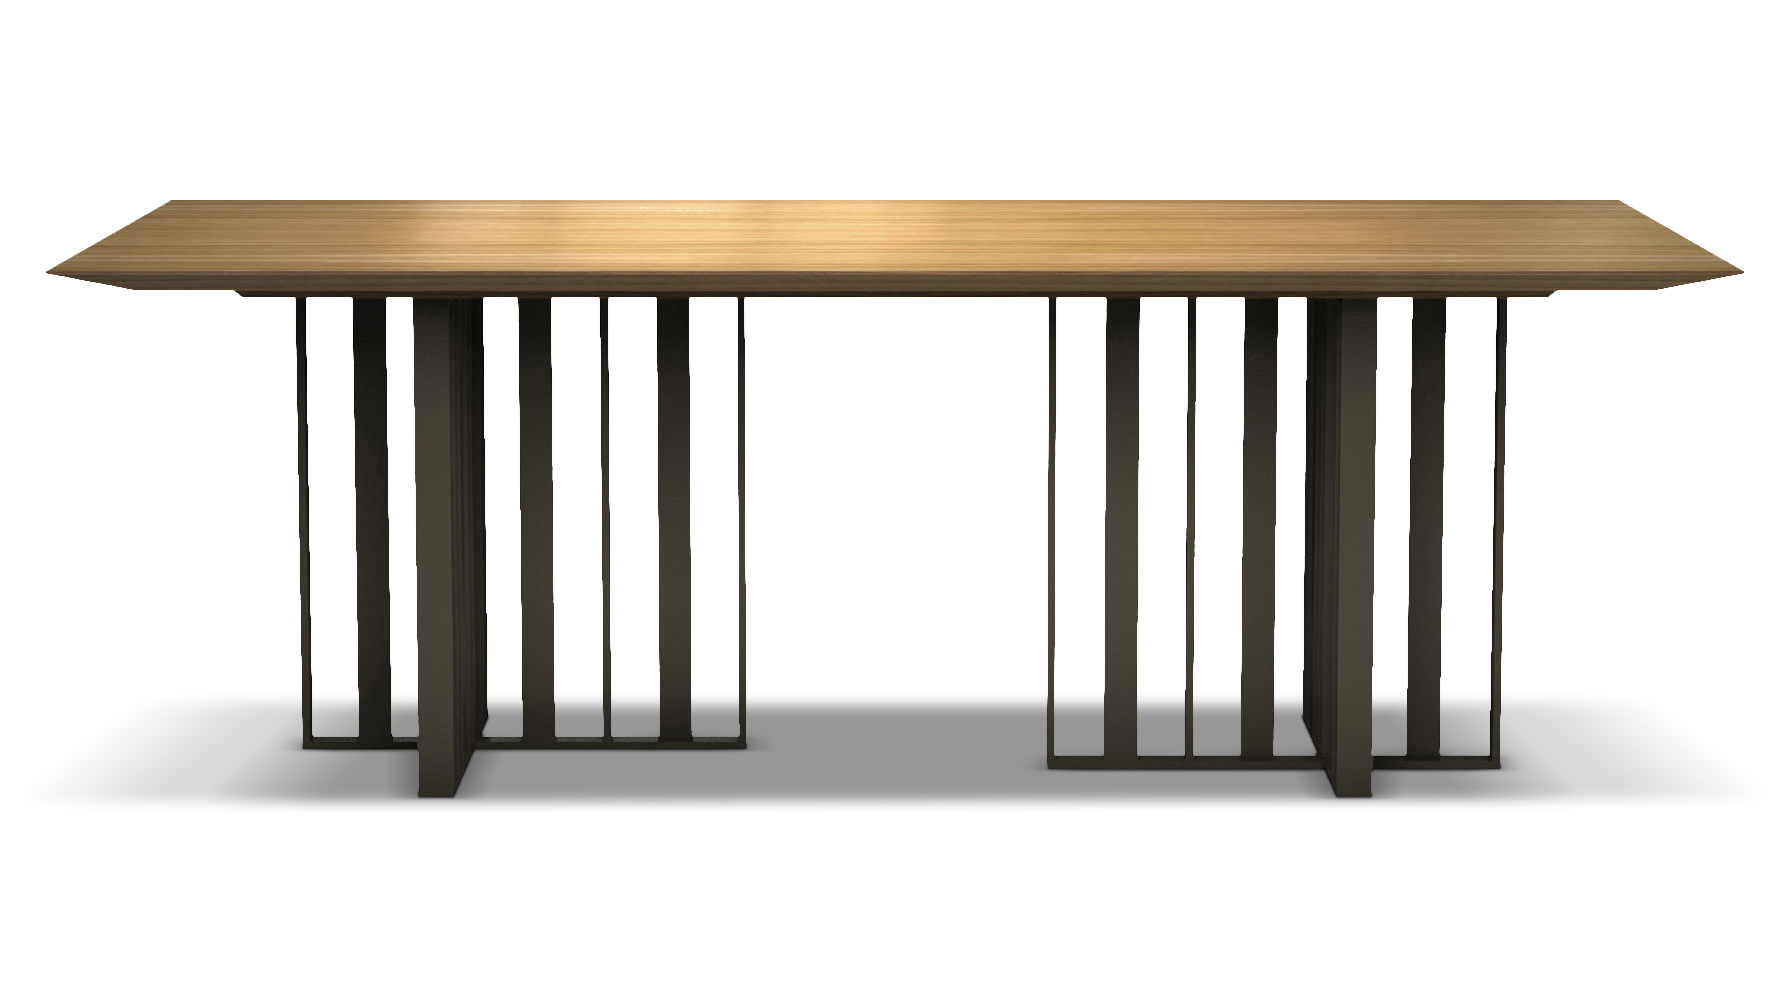 Saida 87 inch wood and aluminum dining table natural oak on bronze zuri furniture - Natural oak dining table and chairs ...